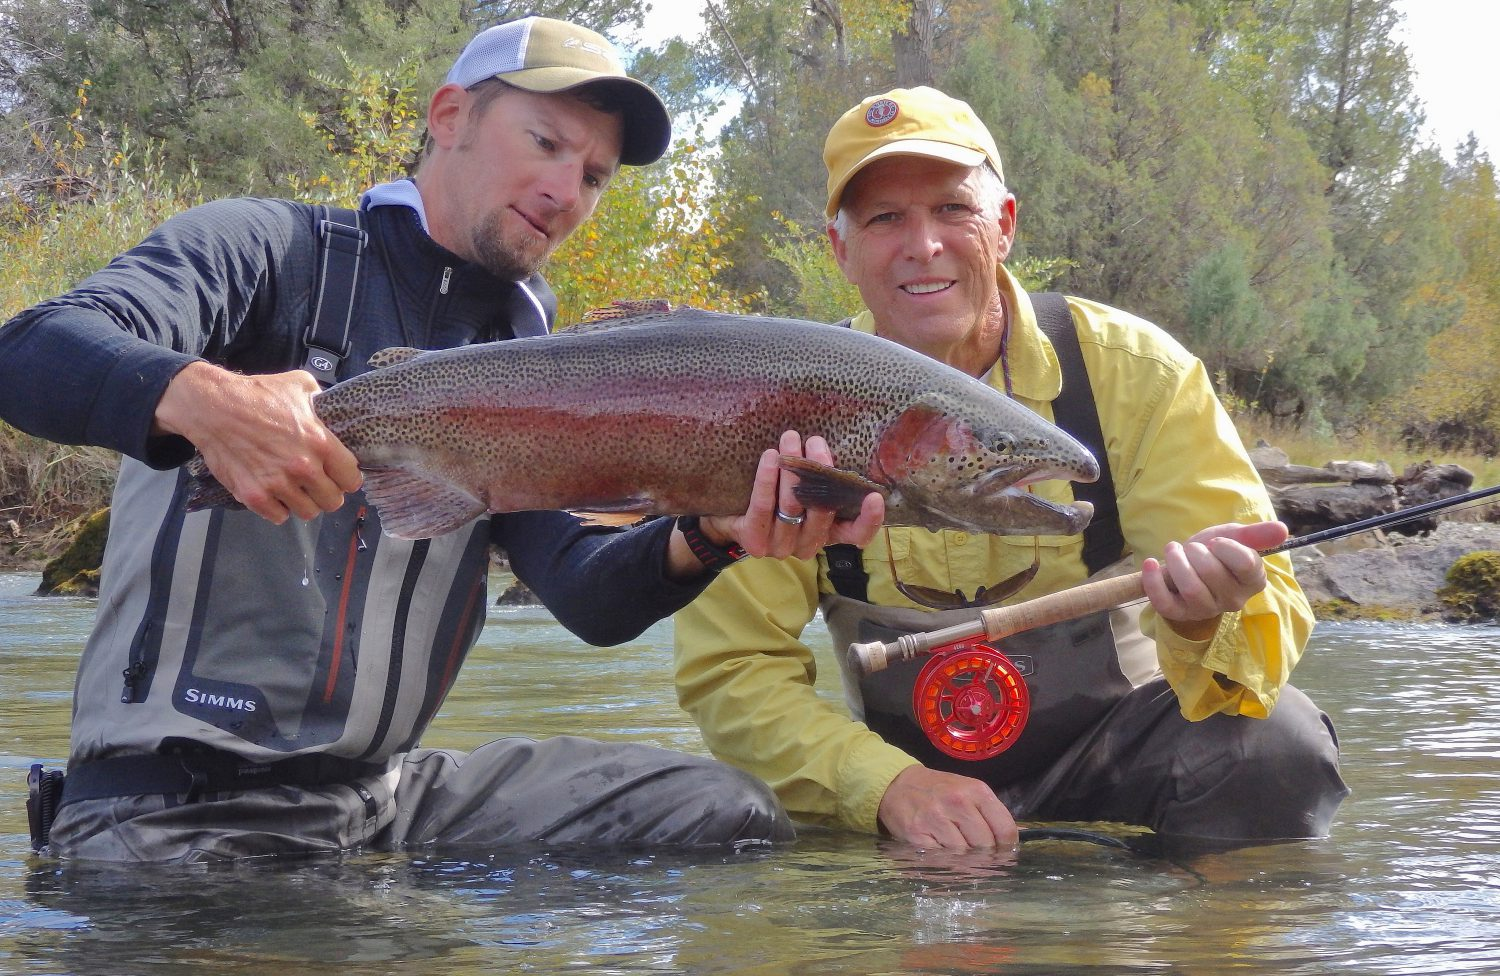 Sight fishing trophy trout rigs adventure co fly shop for Colorado fishing trips